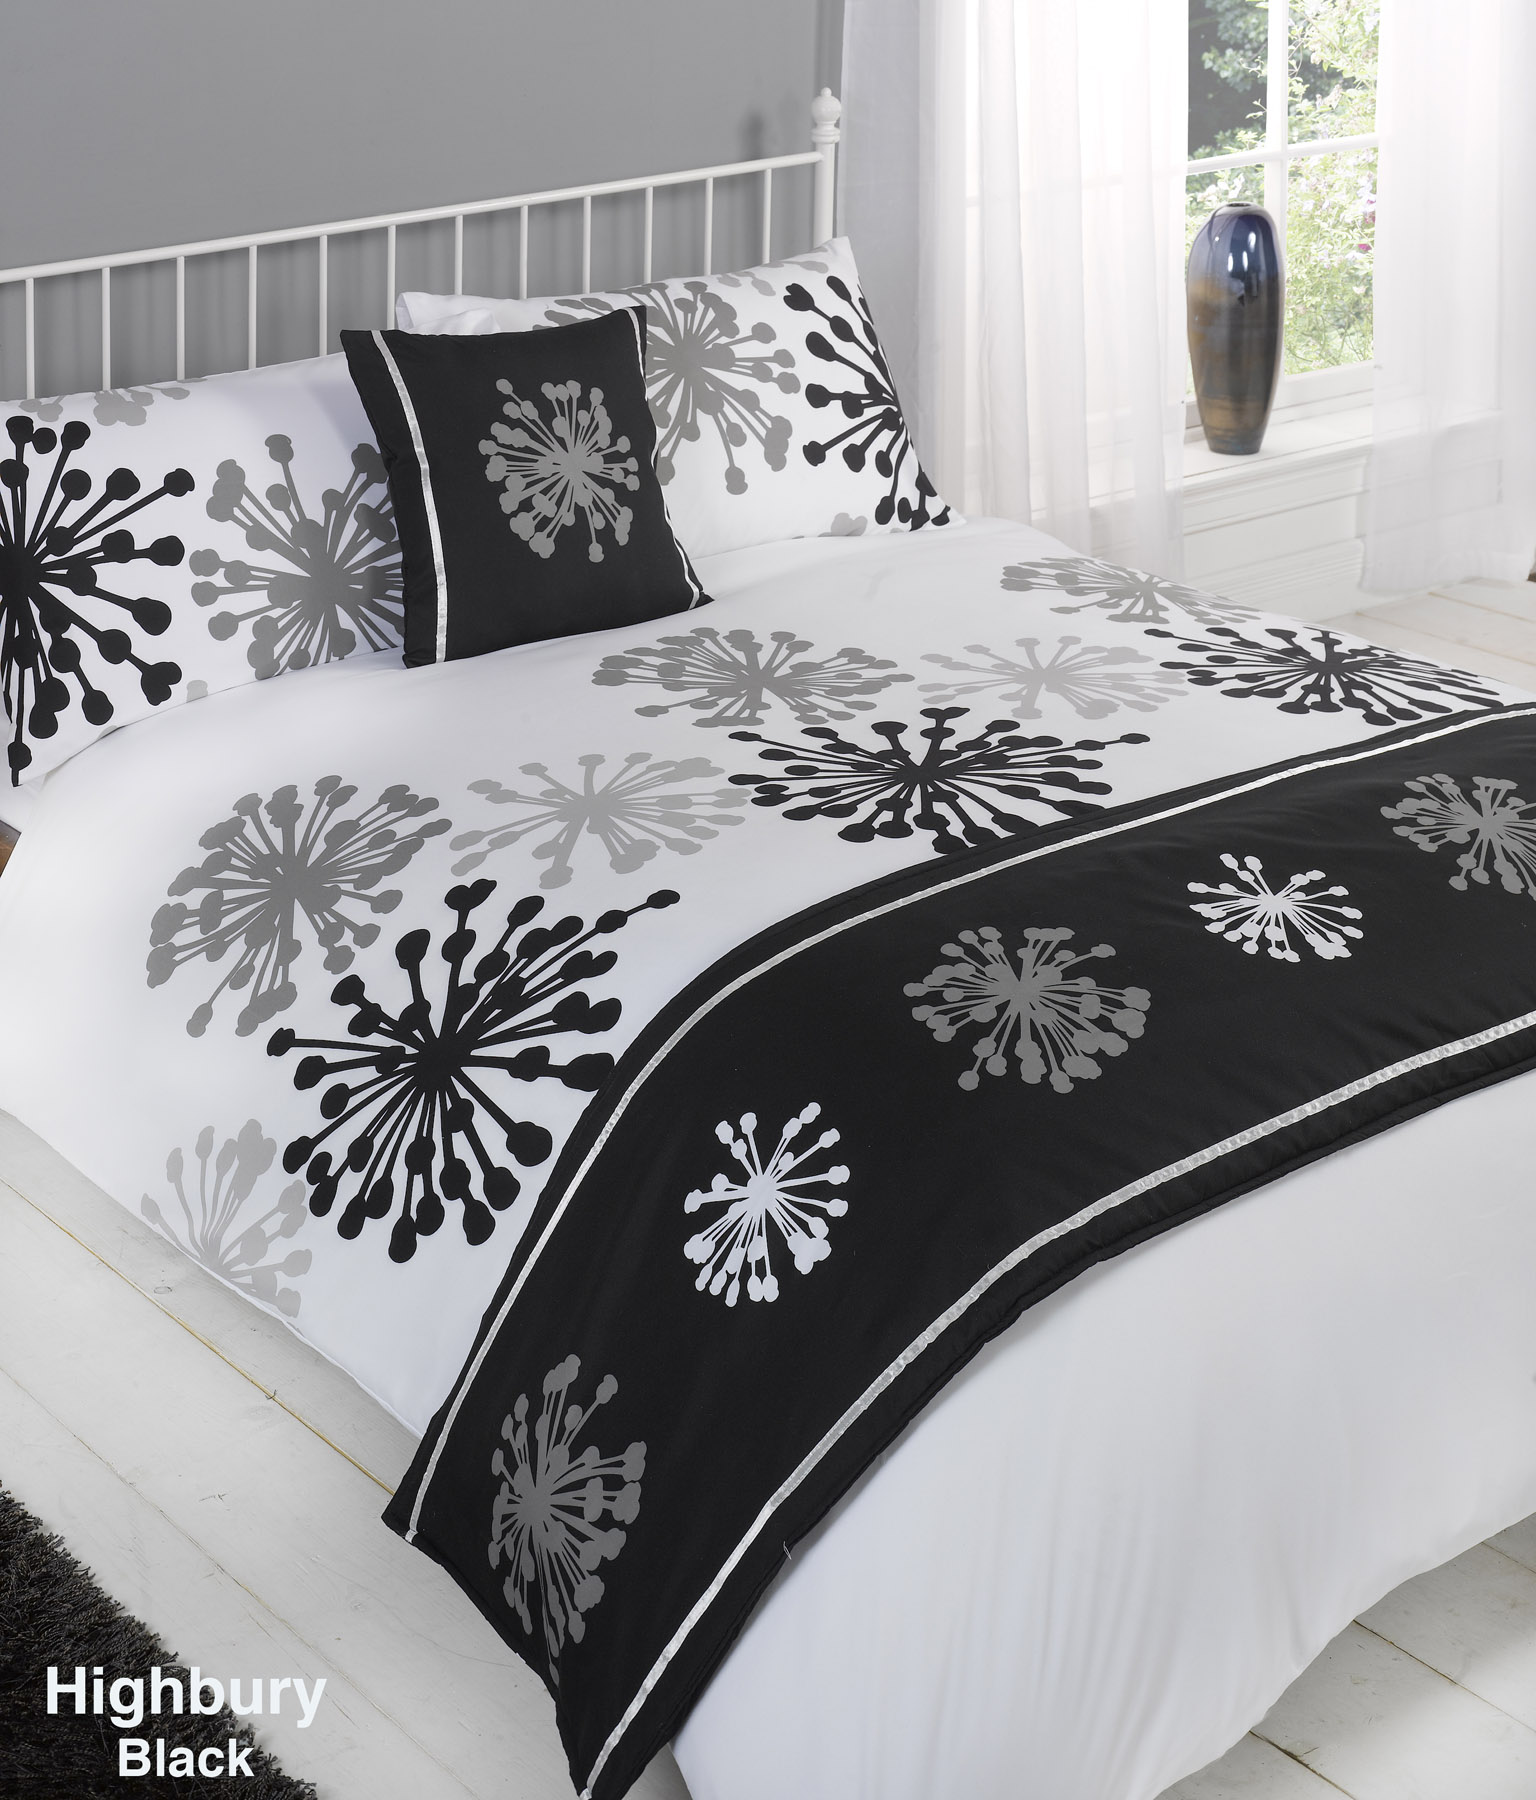 Double Doona Covers Duvet Cover With Pillow Case Quilt Bedding Set Bed In A